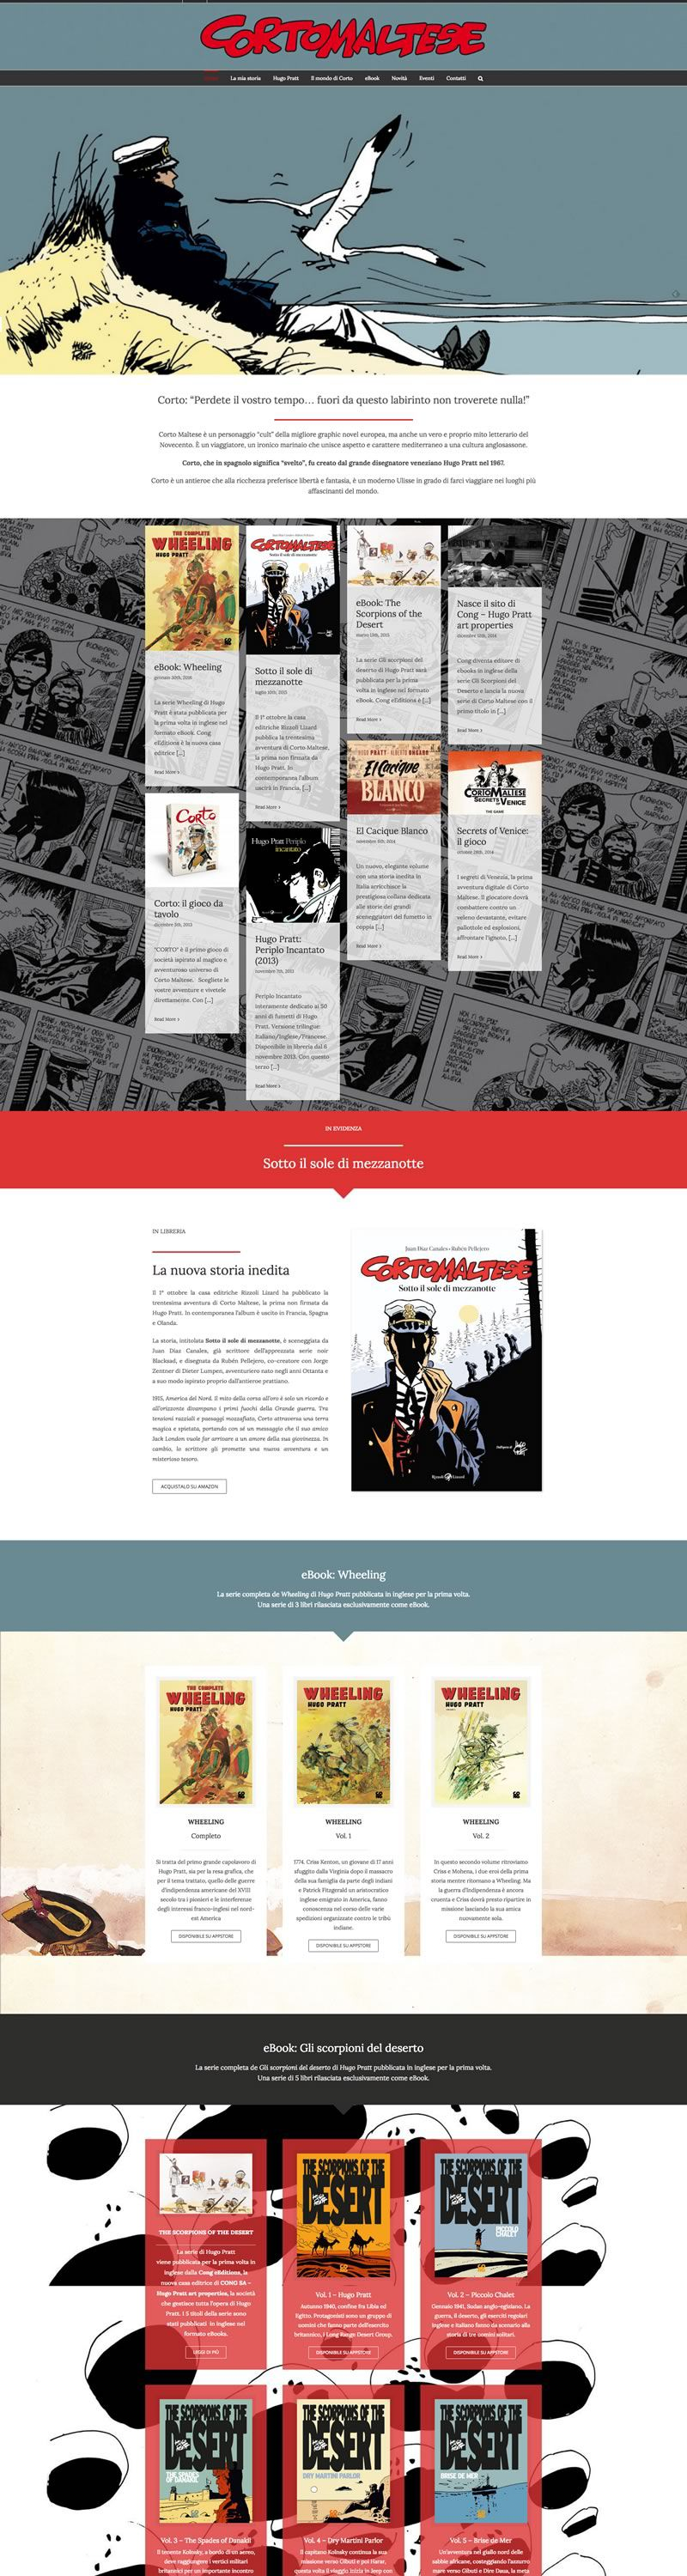 Corto Maltese website design